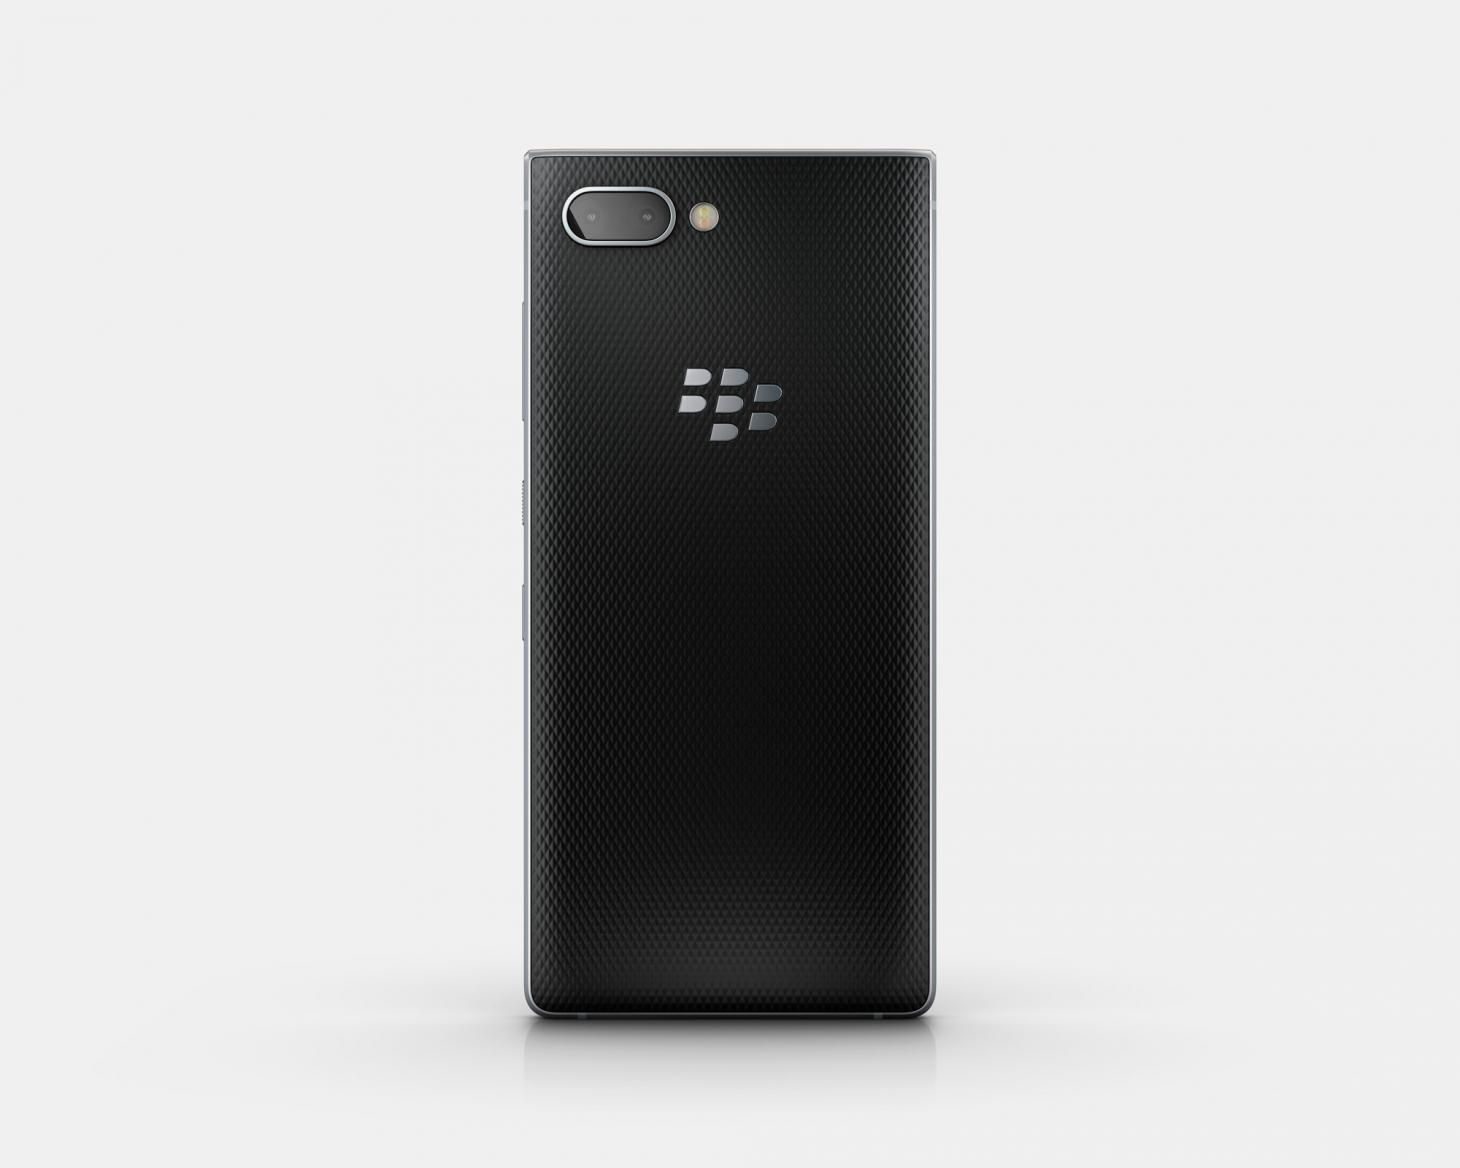 BlackBerry KEY2 smartphone back panel